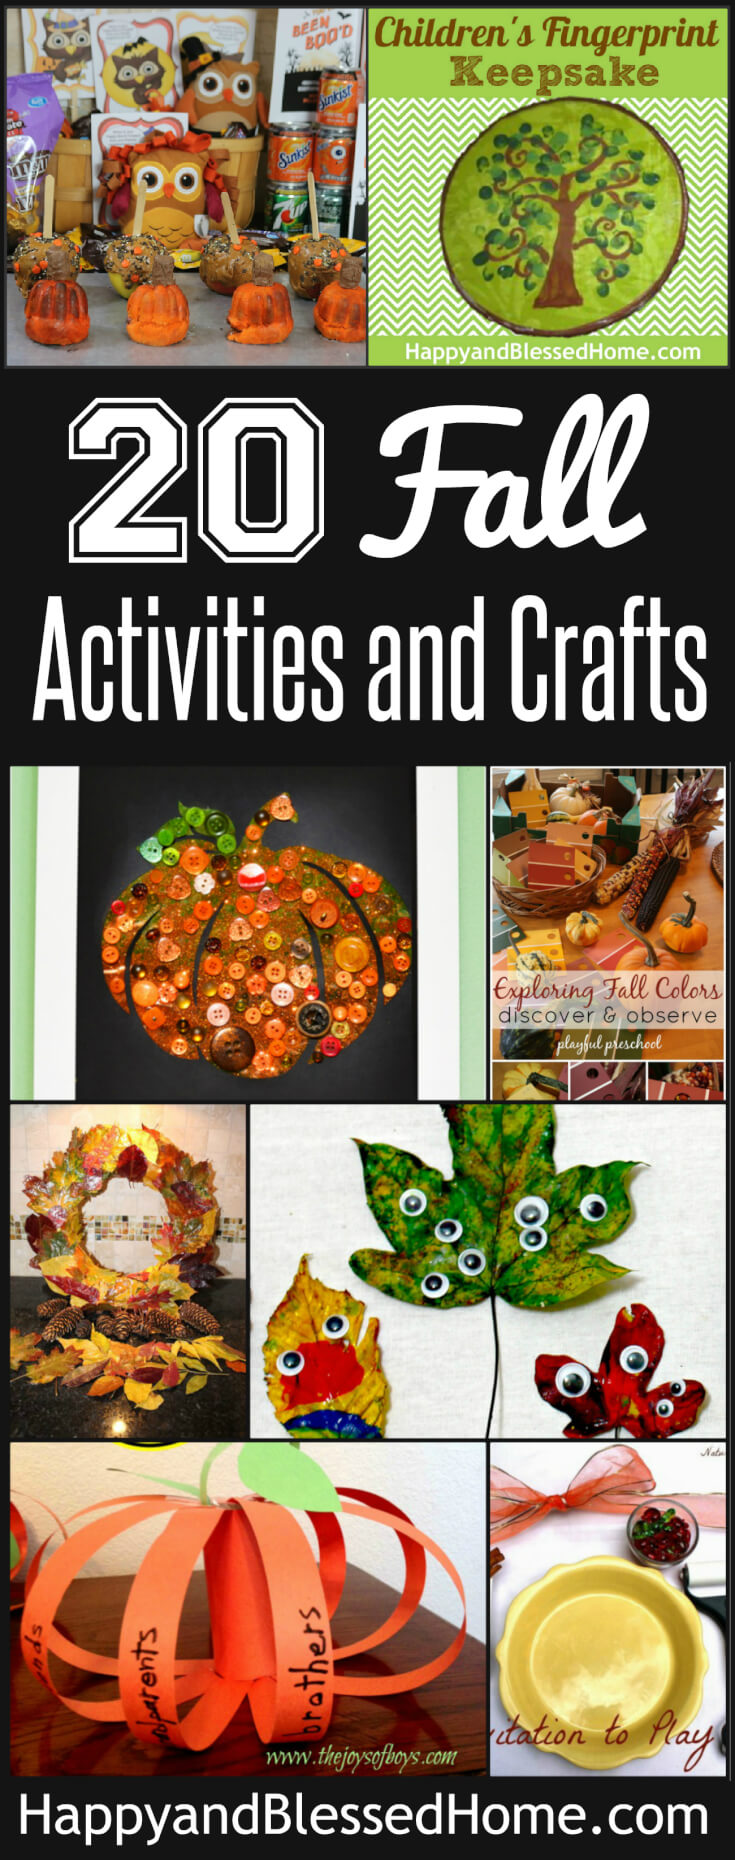 Looking for family fun crafts and activities for kids? You'll love this list of awesome ideas including 20 Fun Fall Activities and Crafts for Families.